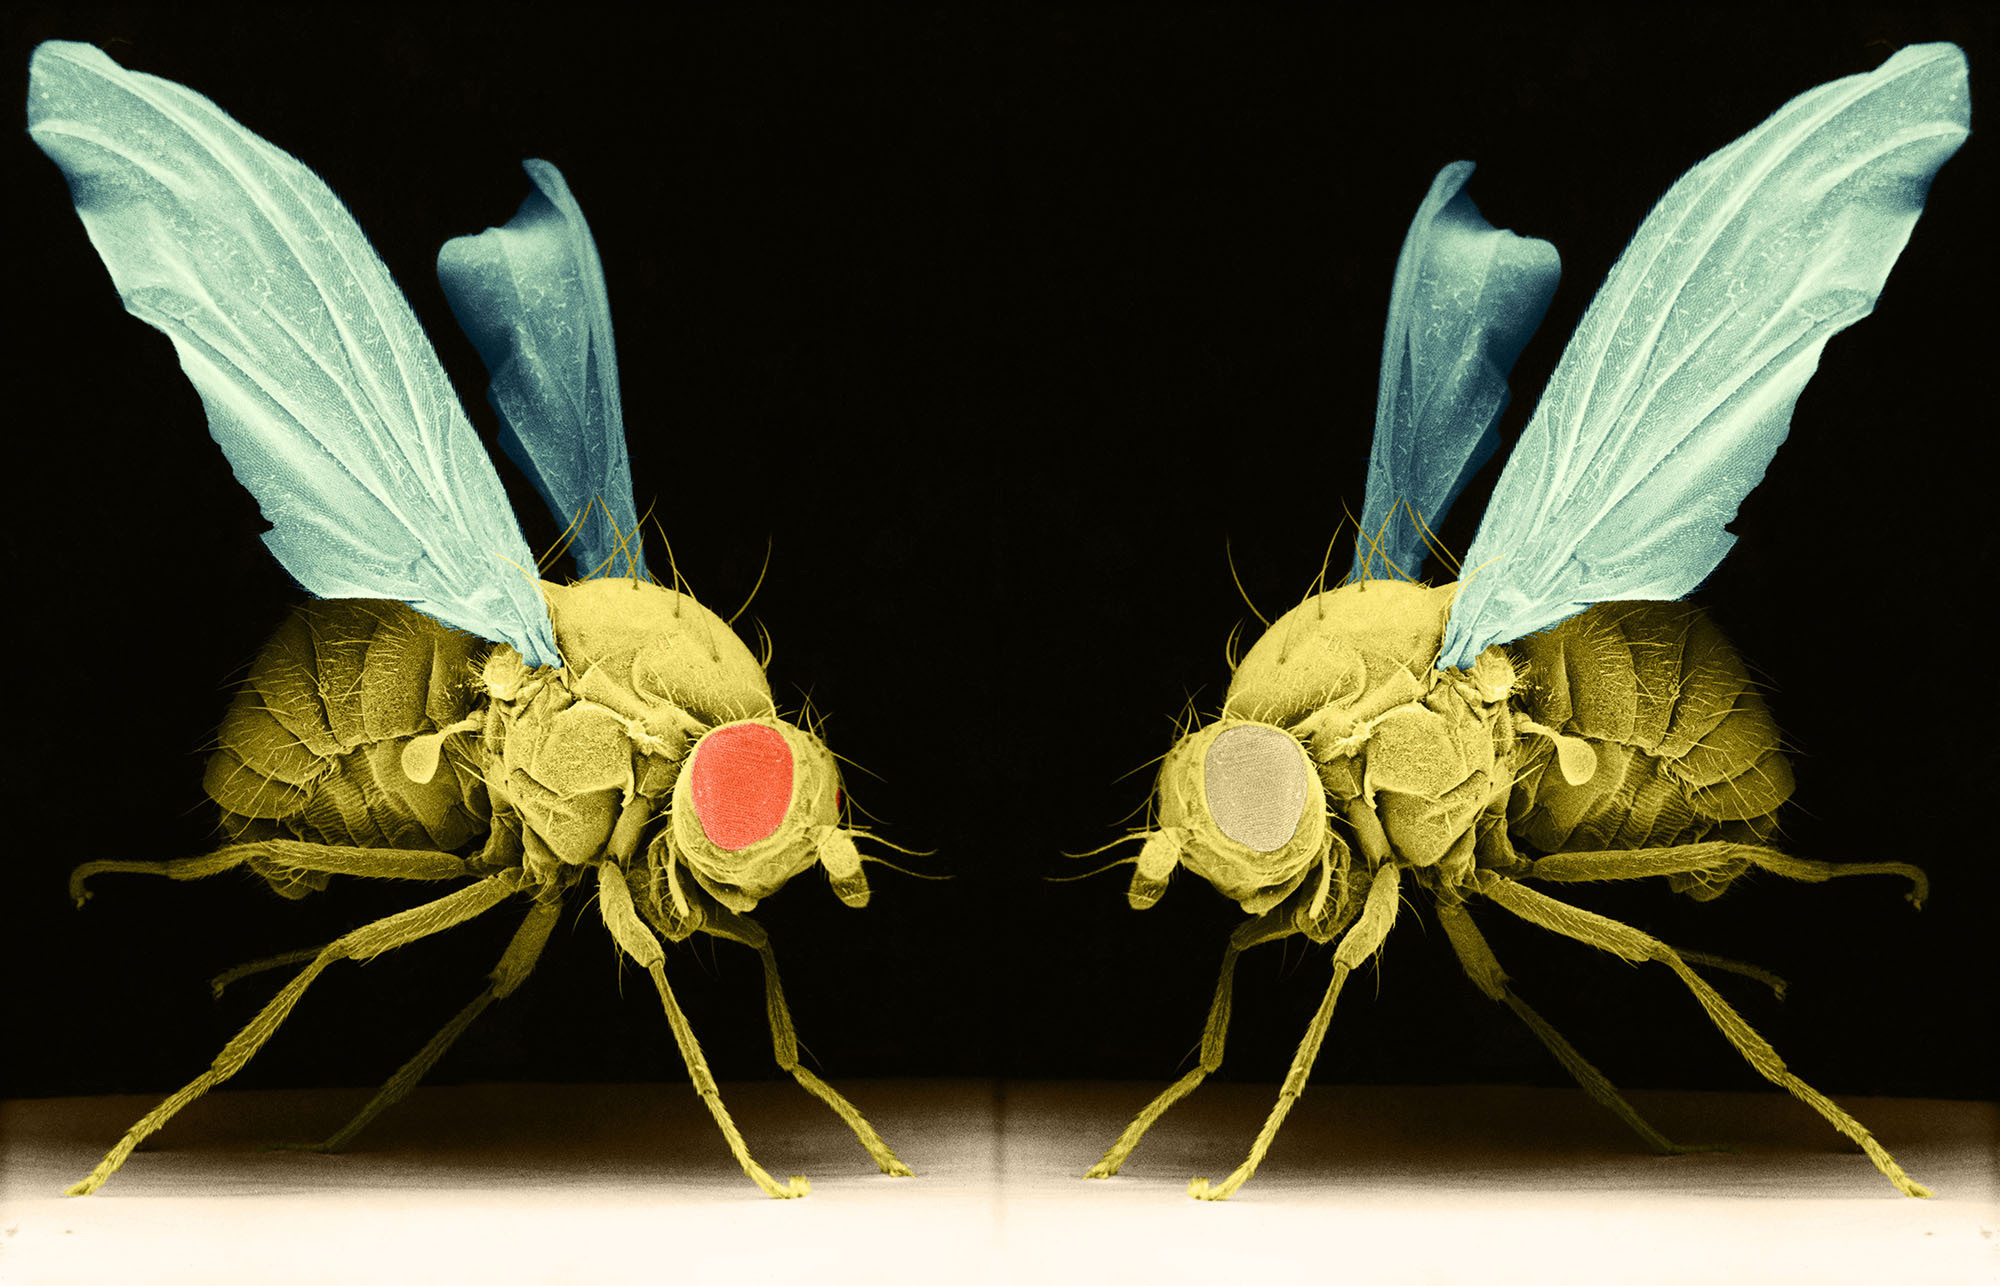 How Research On Sleepless Fruit Flies Could Help Human Insomniacs